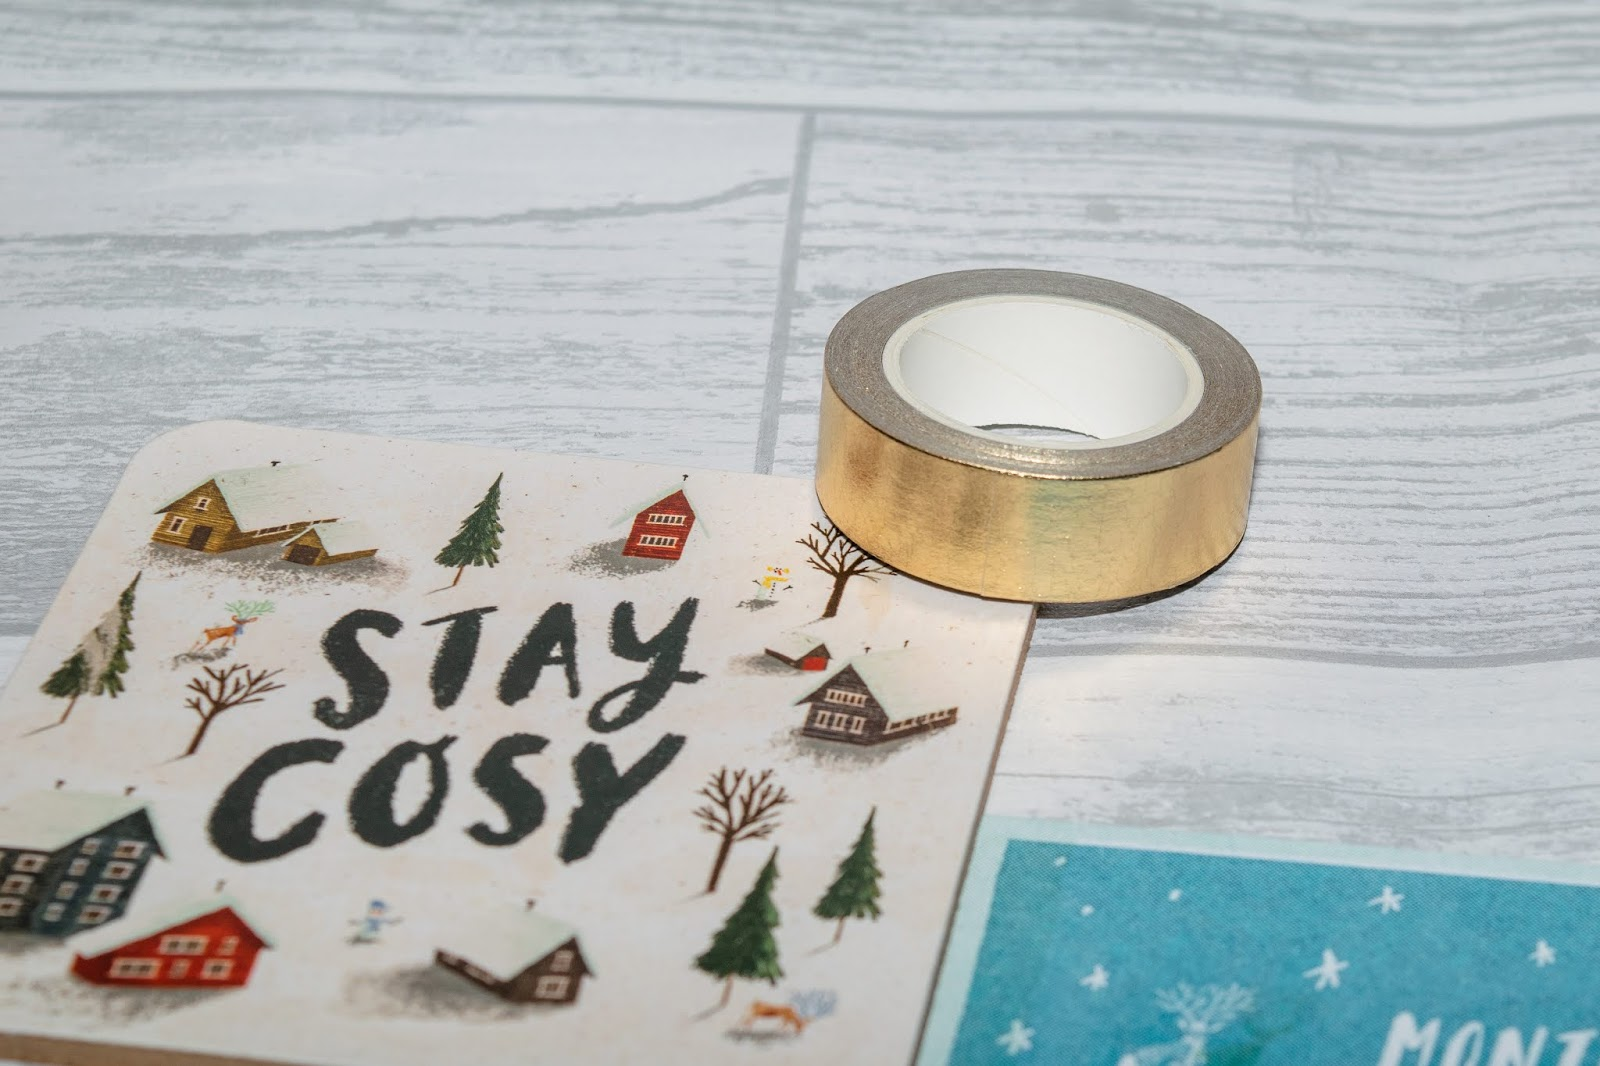 A gold foil washi tape on a cosy that says 'Stay Cosy' on the front.